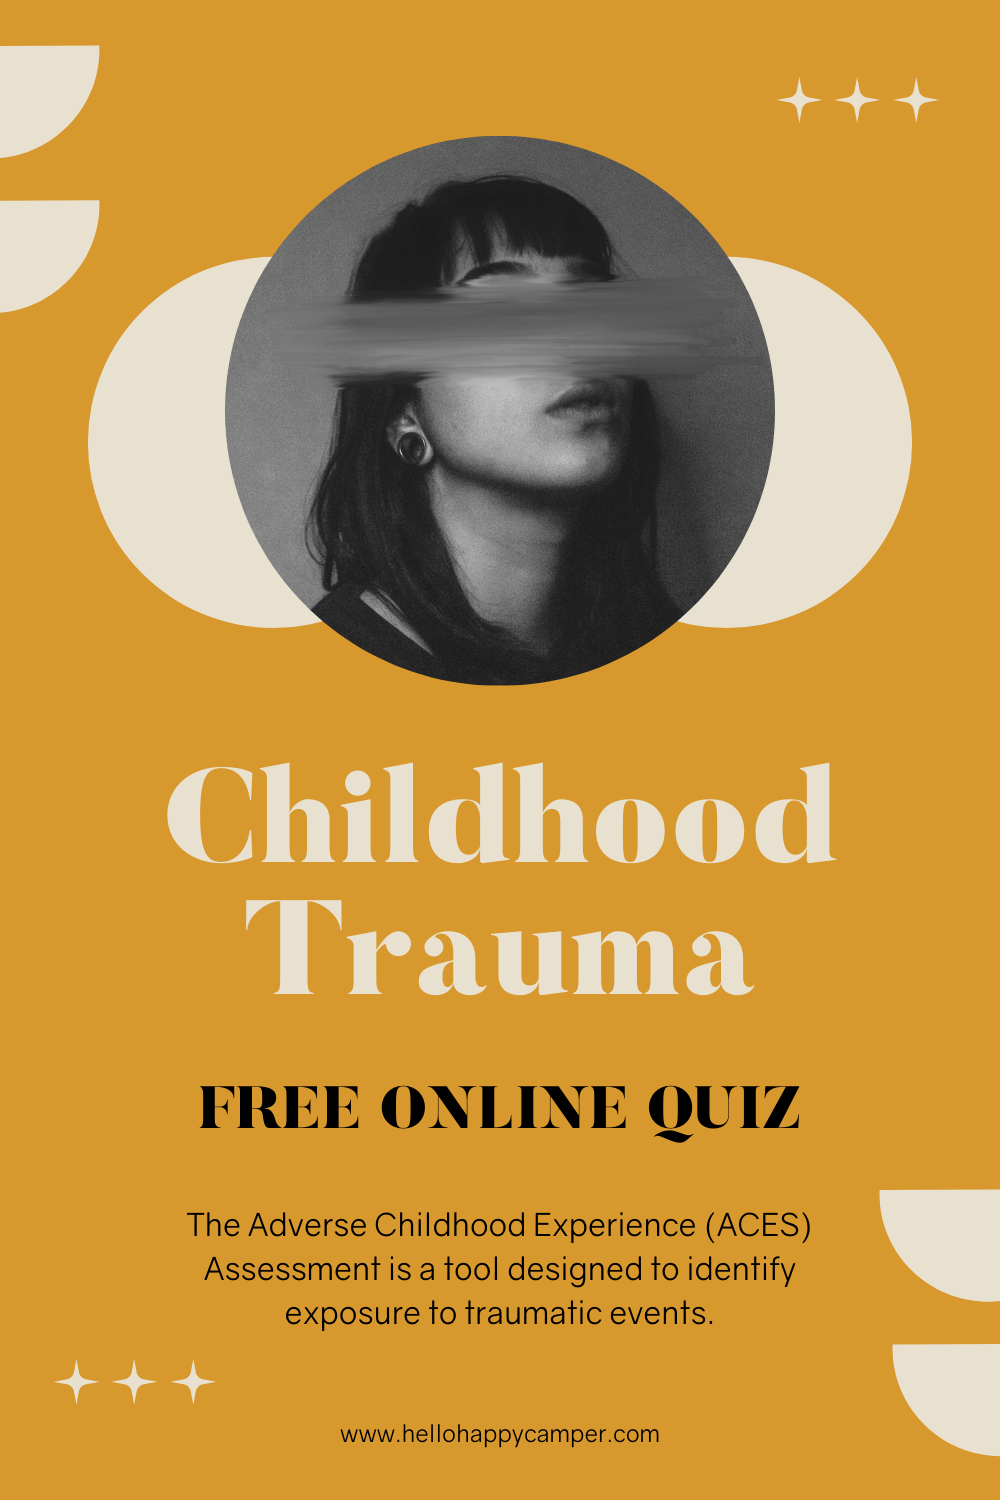 Childhood trauma poster, showing black and white photo of a girl with her face scratched out. This poster is good for sharing on Pinterest.